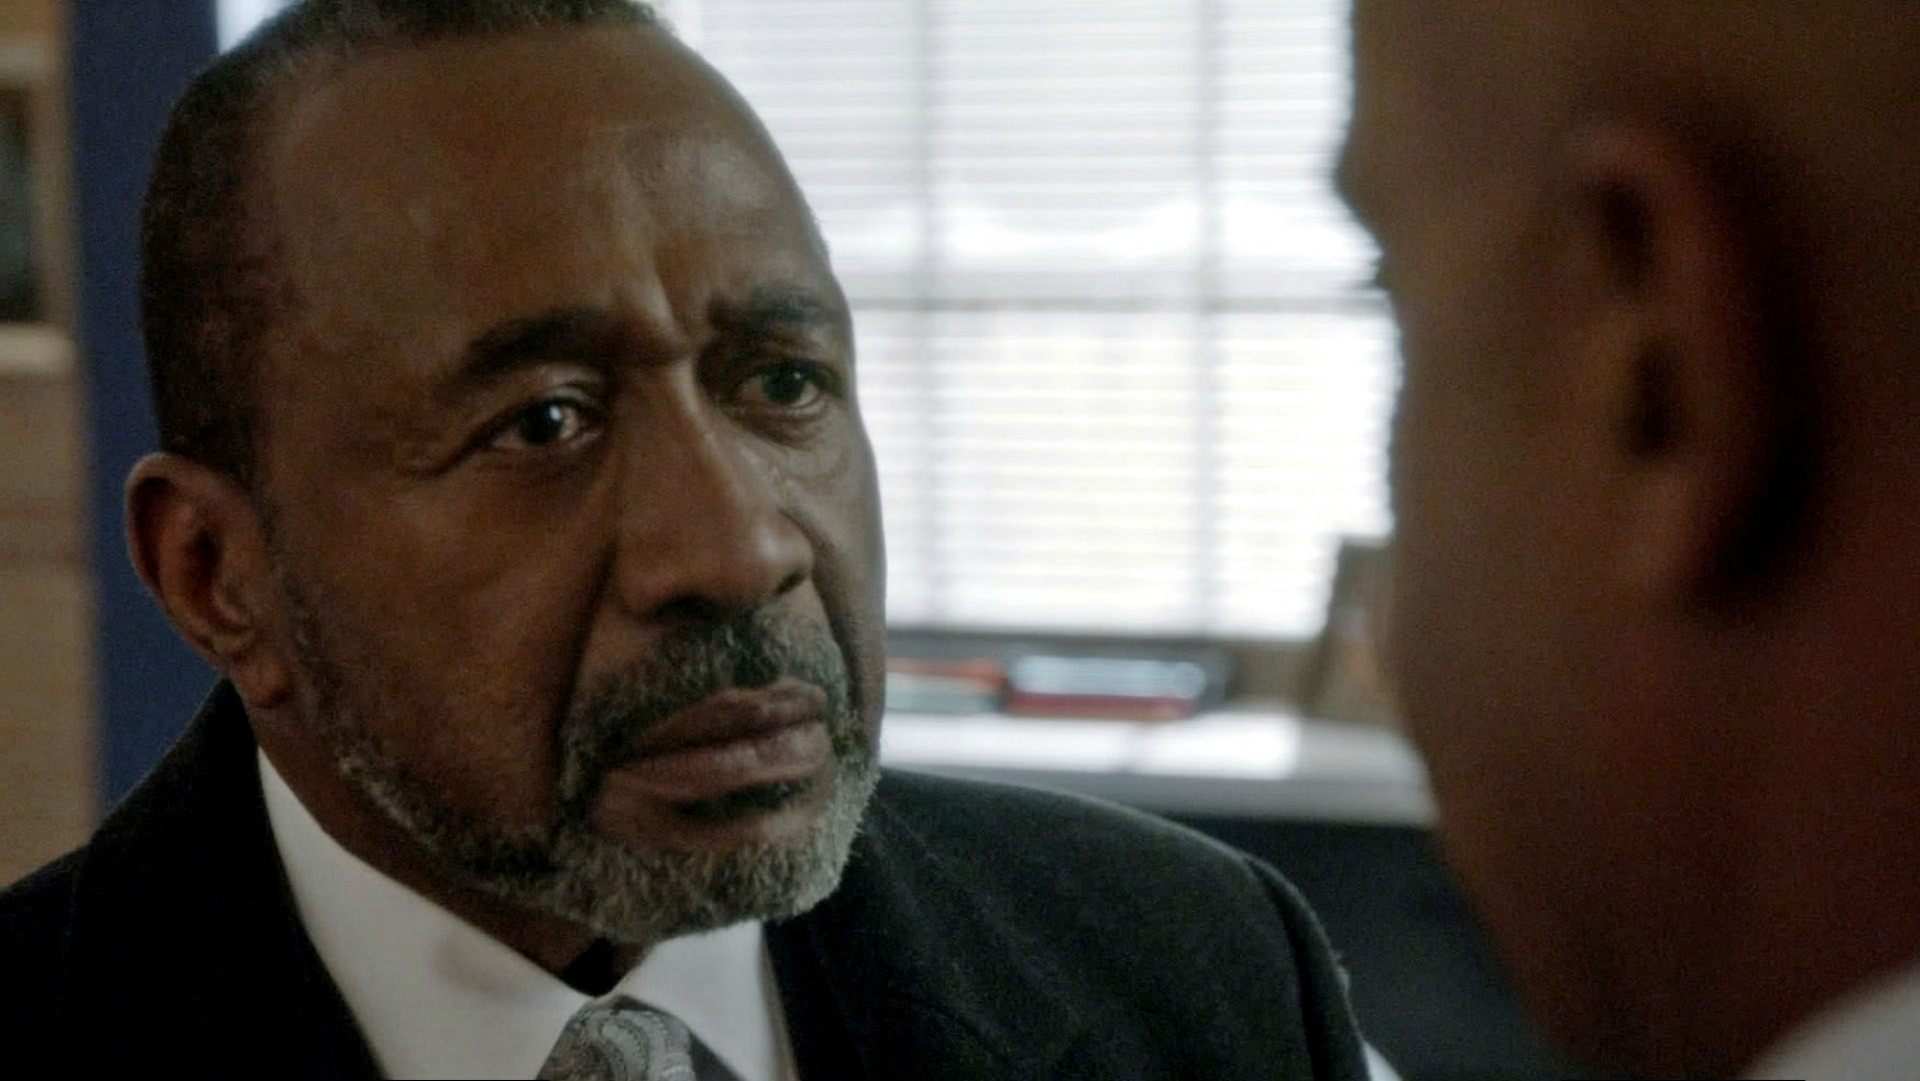 Ben Vereen as Lamar Addison